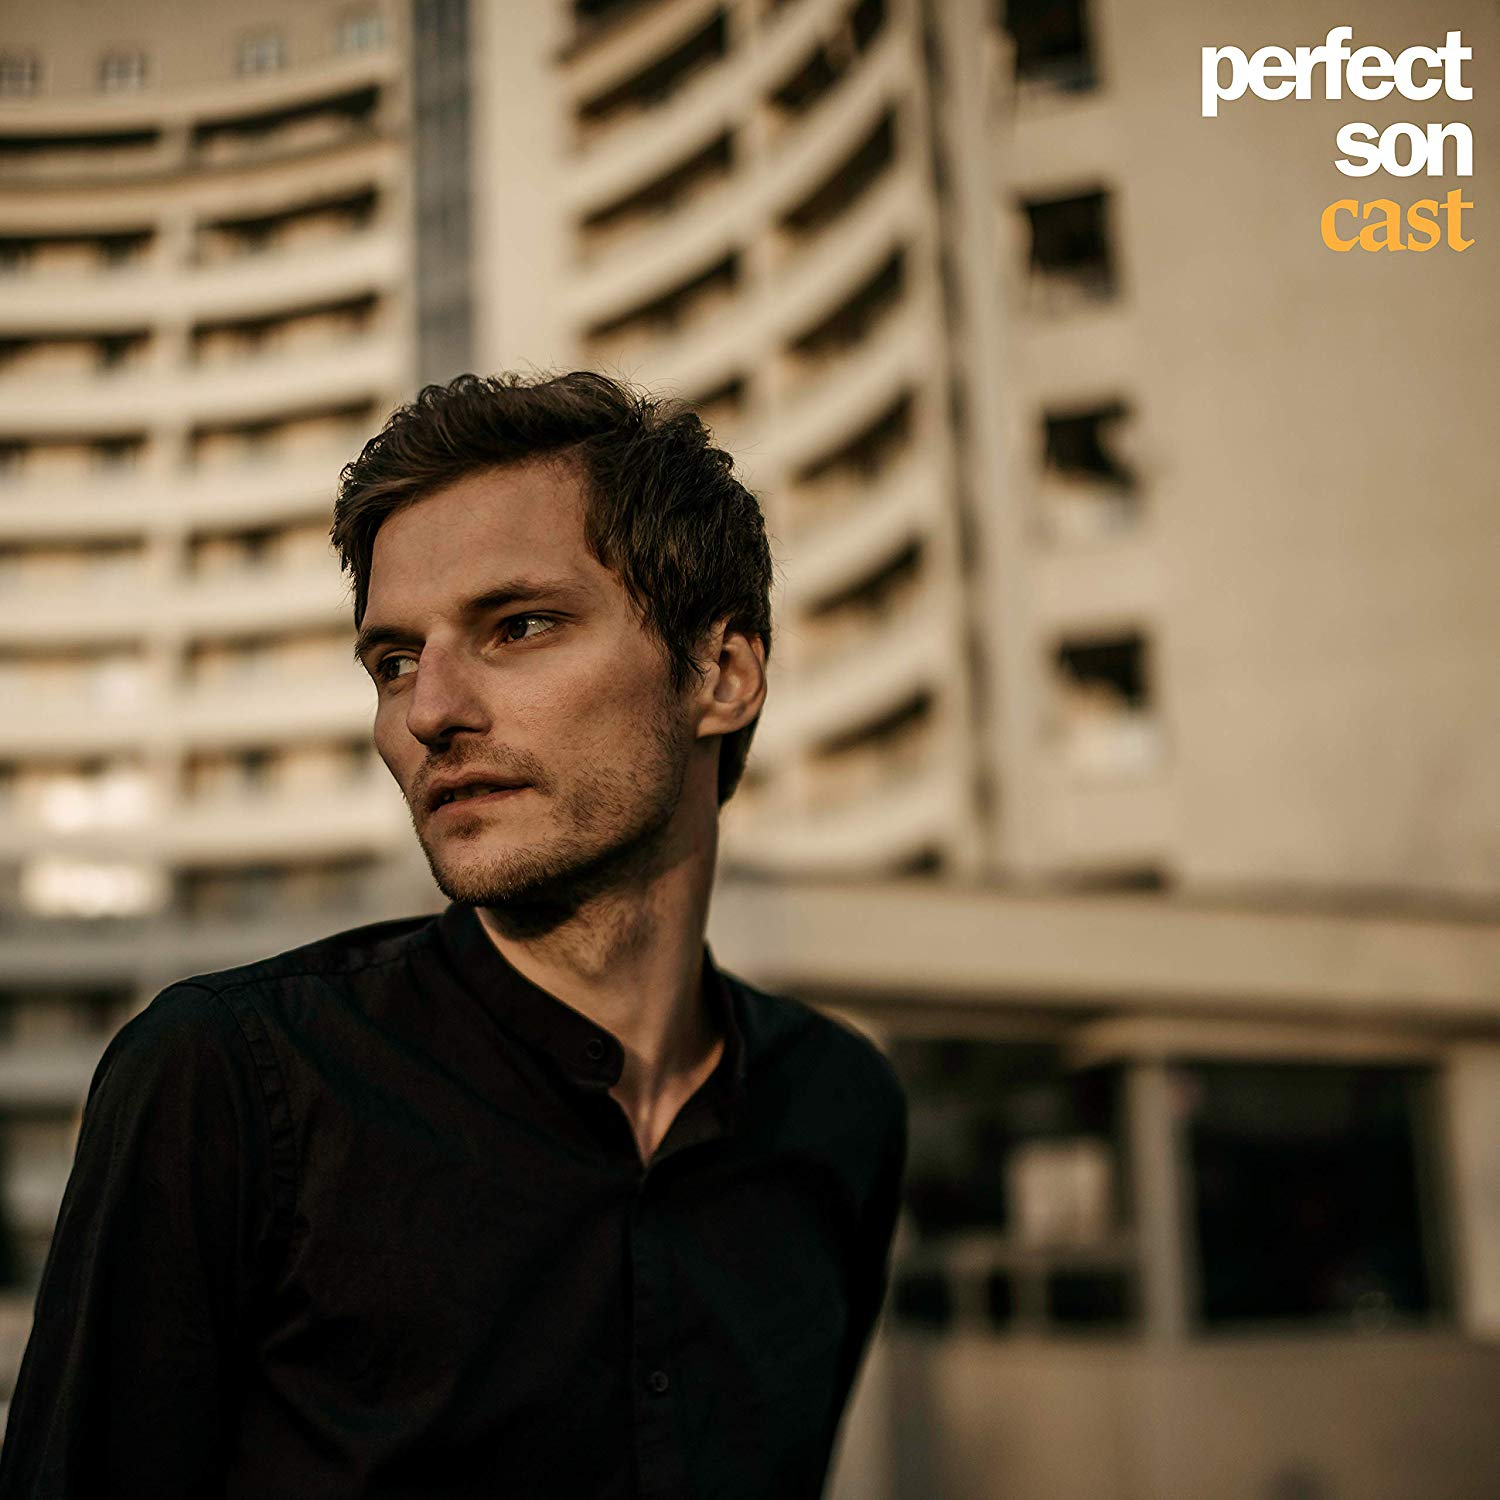 Perfect Son - Cast [LP]